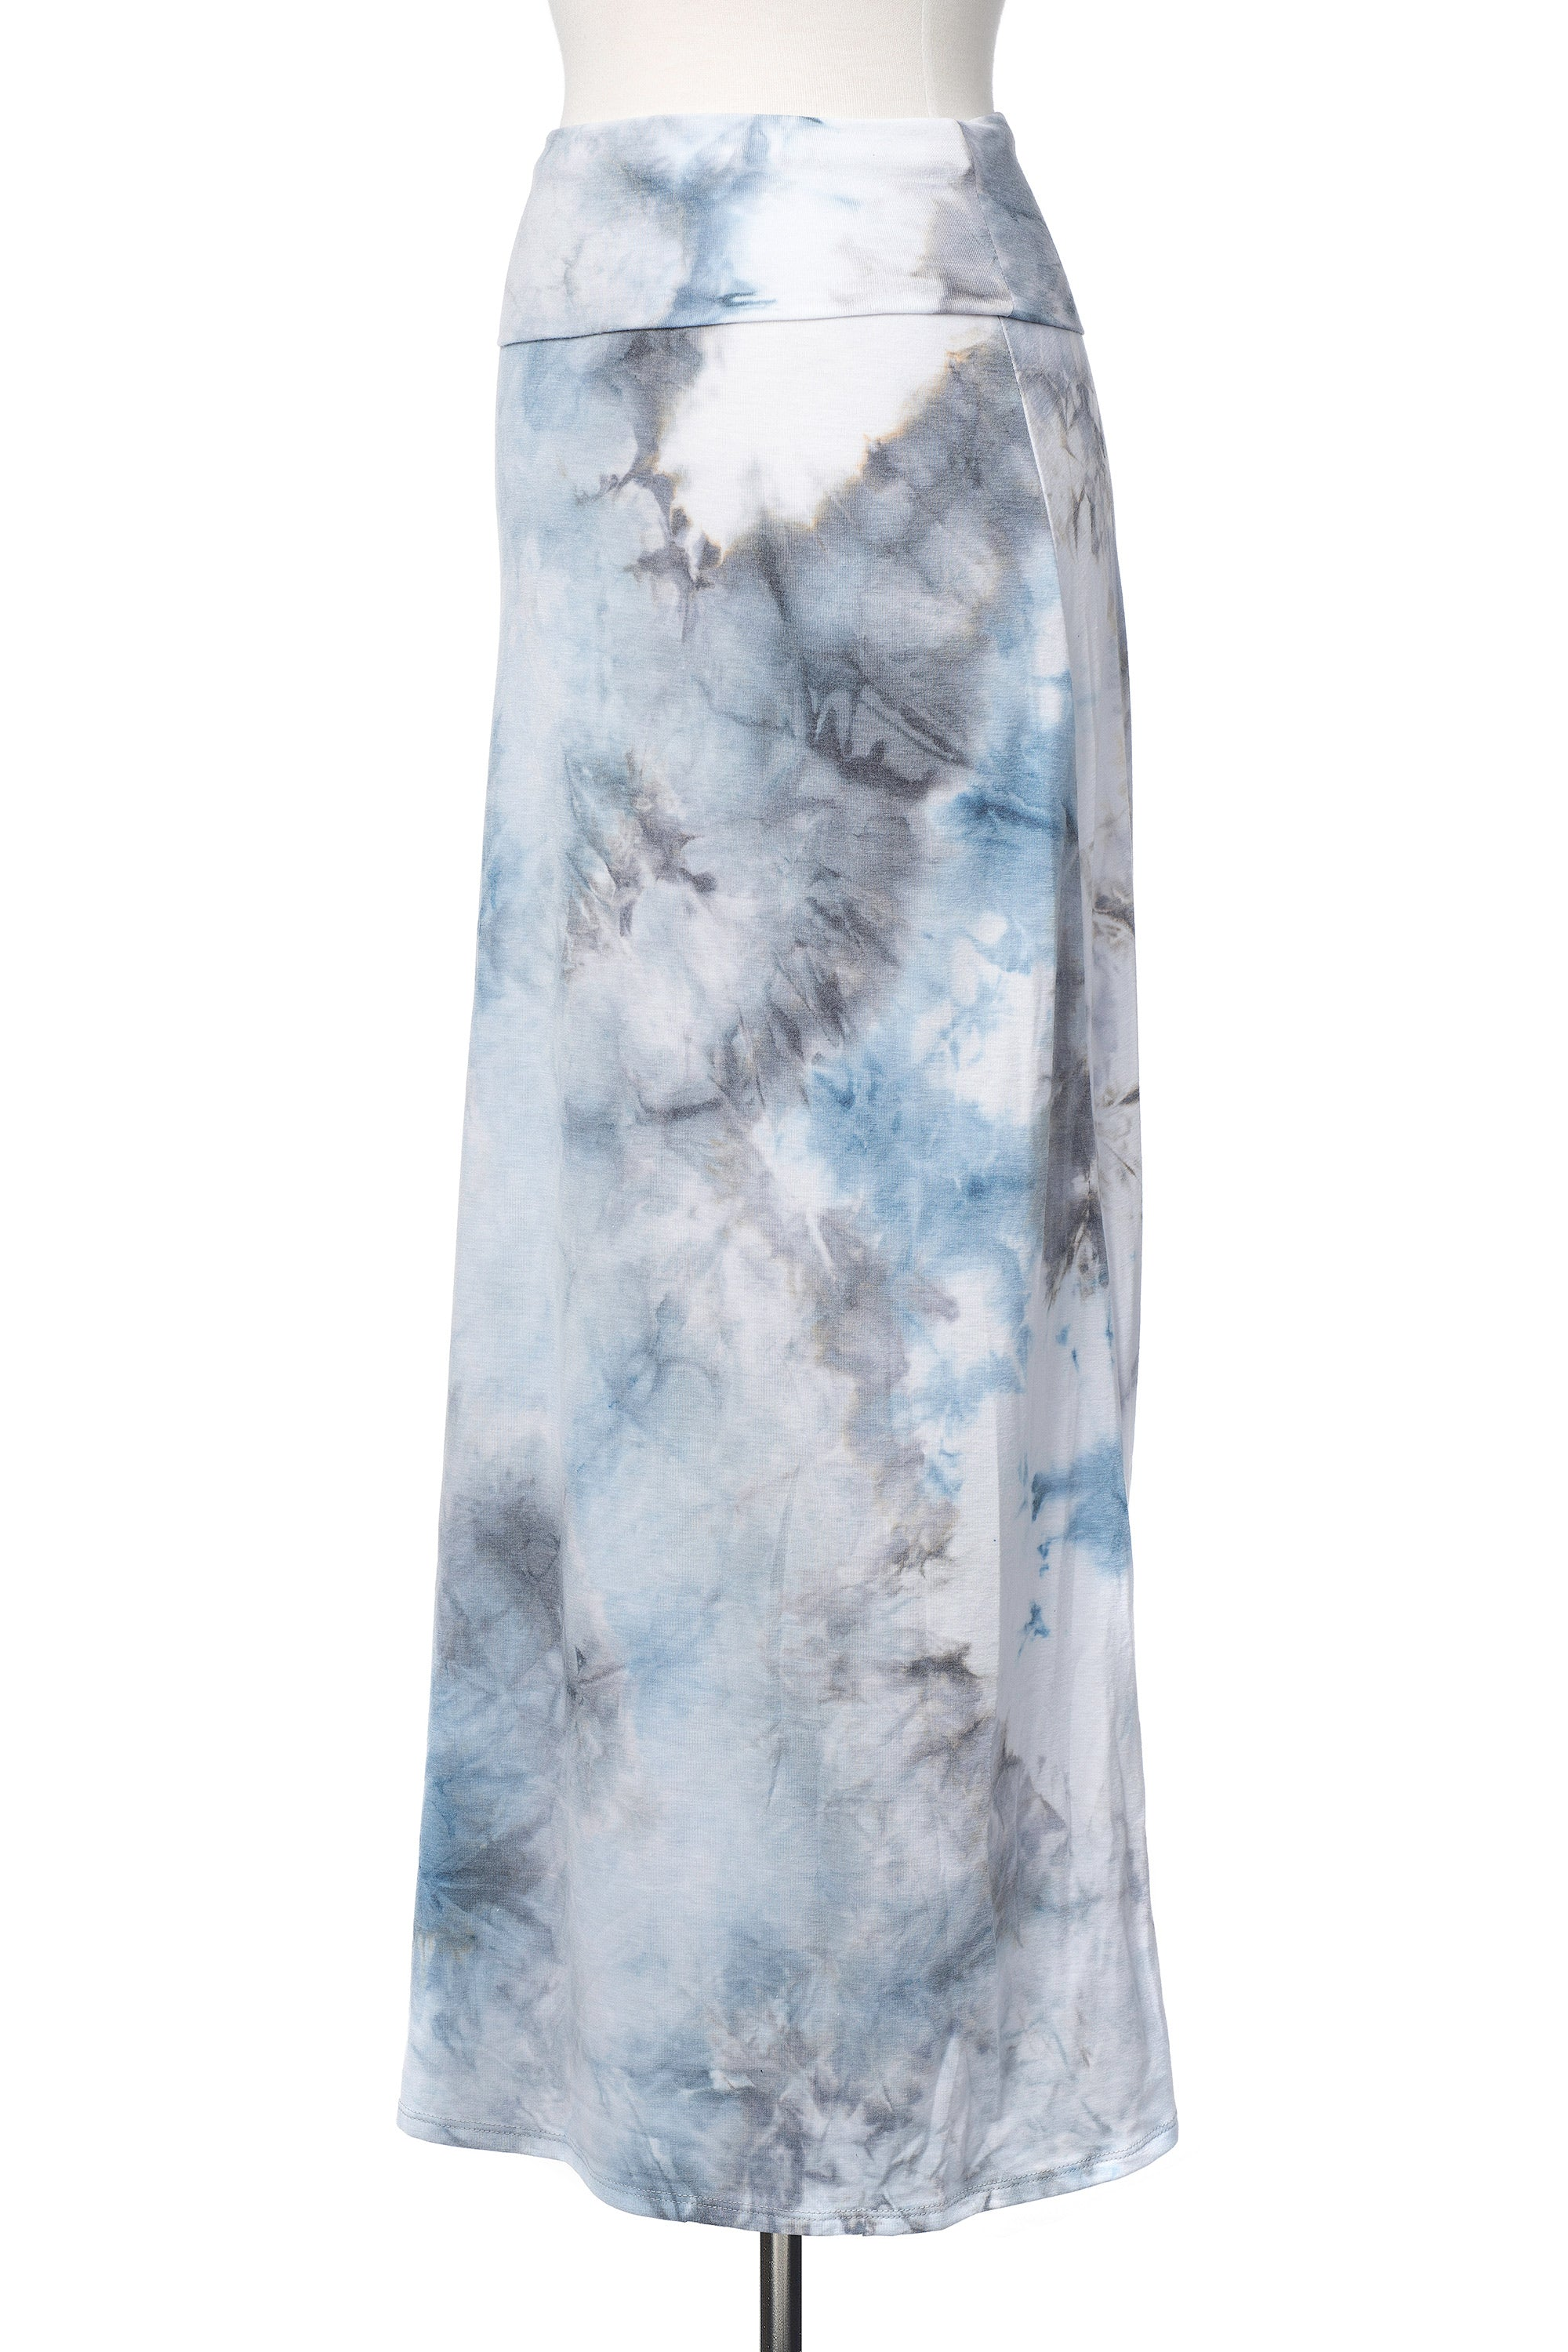 Type 2 Water Crystals Skirt